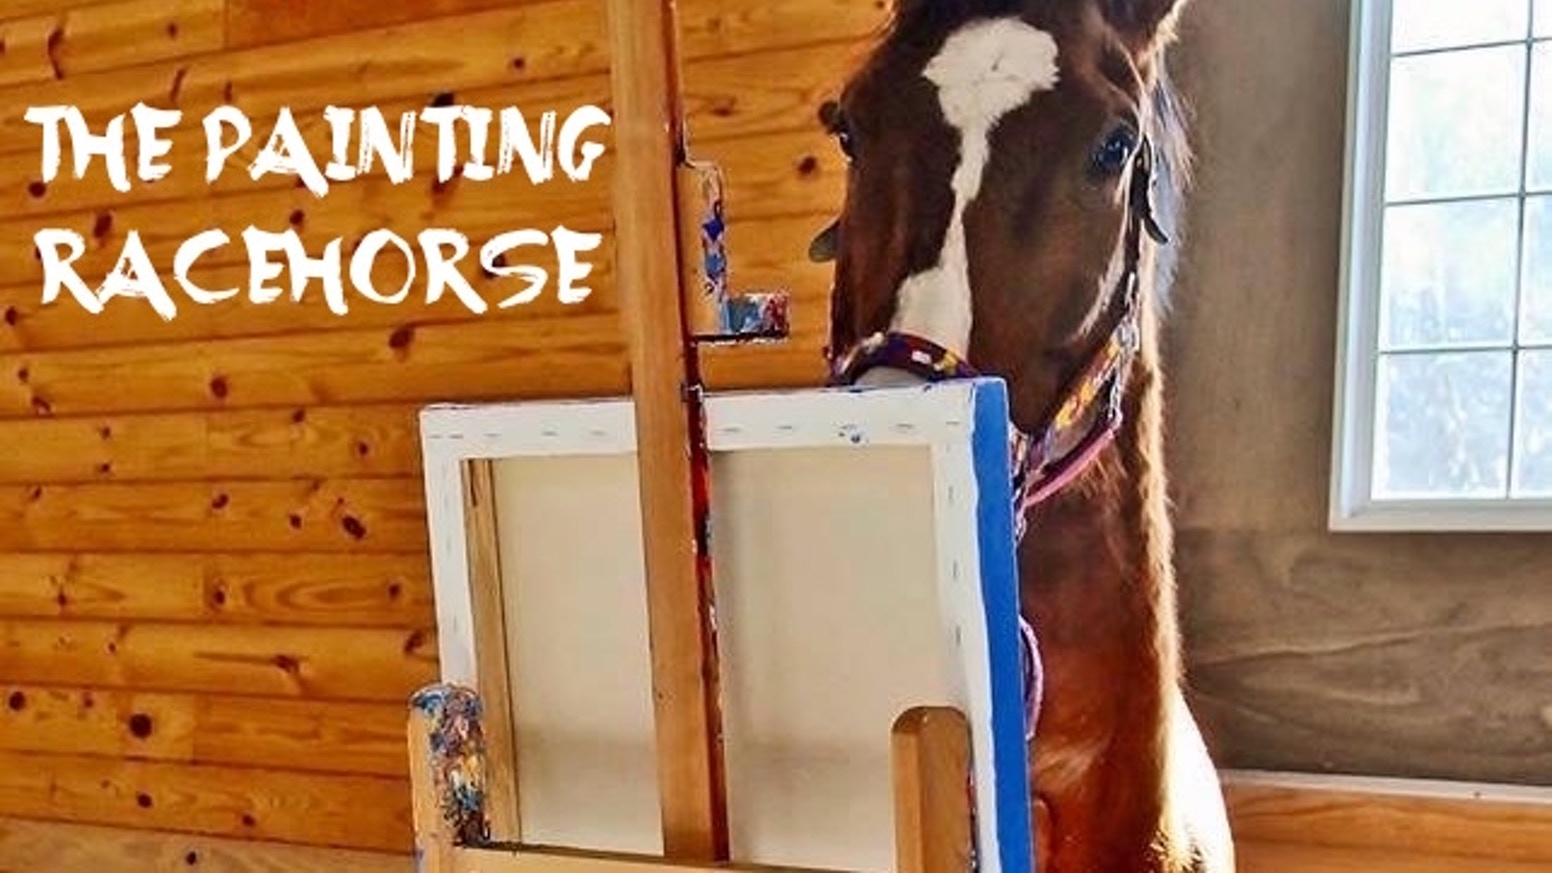 A crippled racehorse rescues himself (and his owner) with a paintbrush.